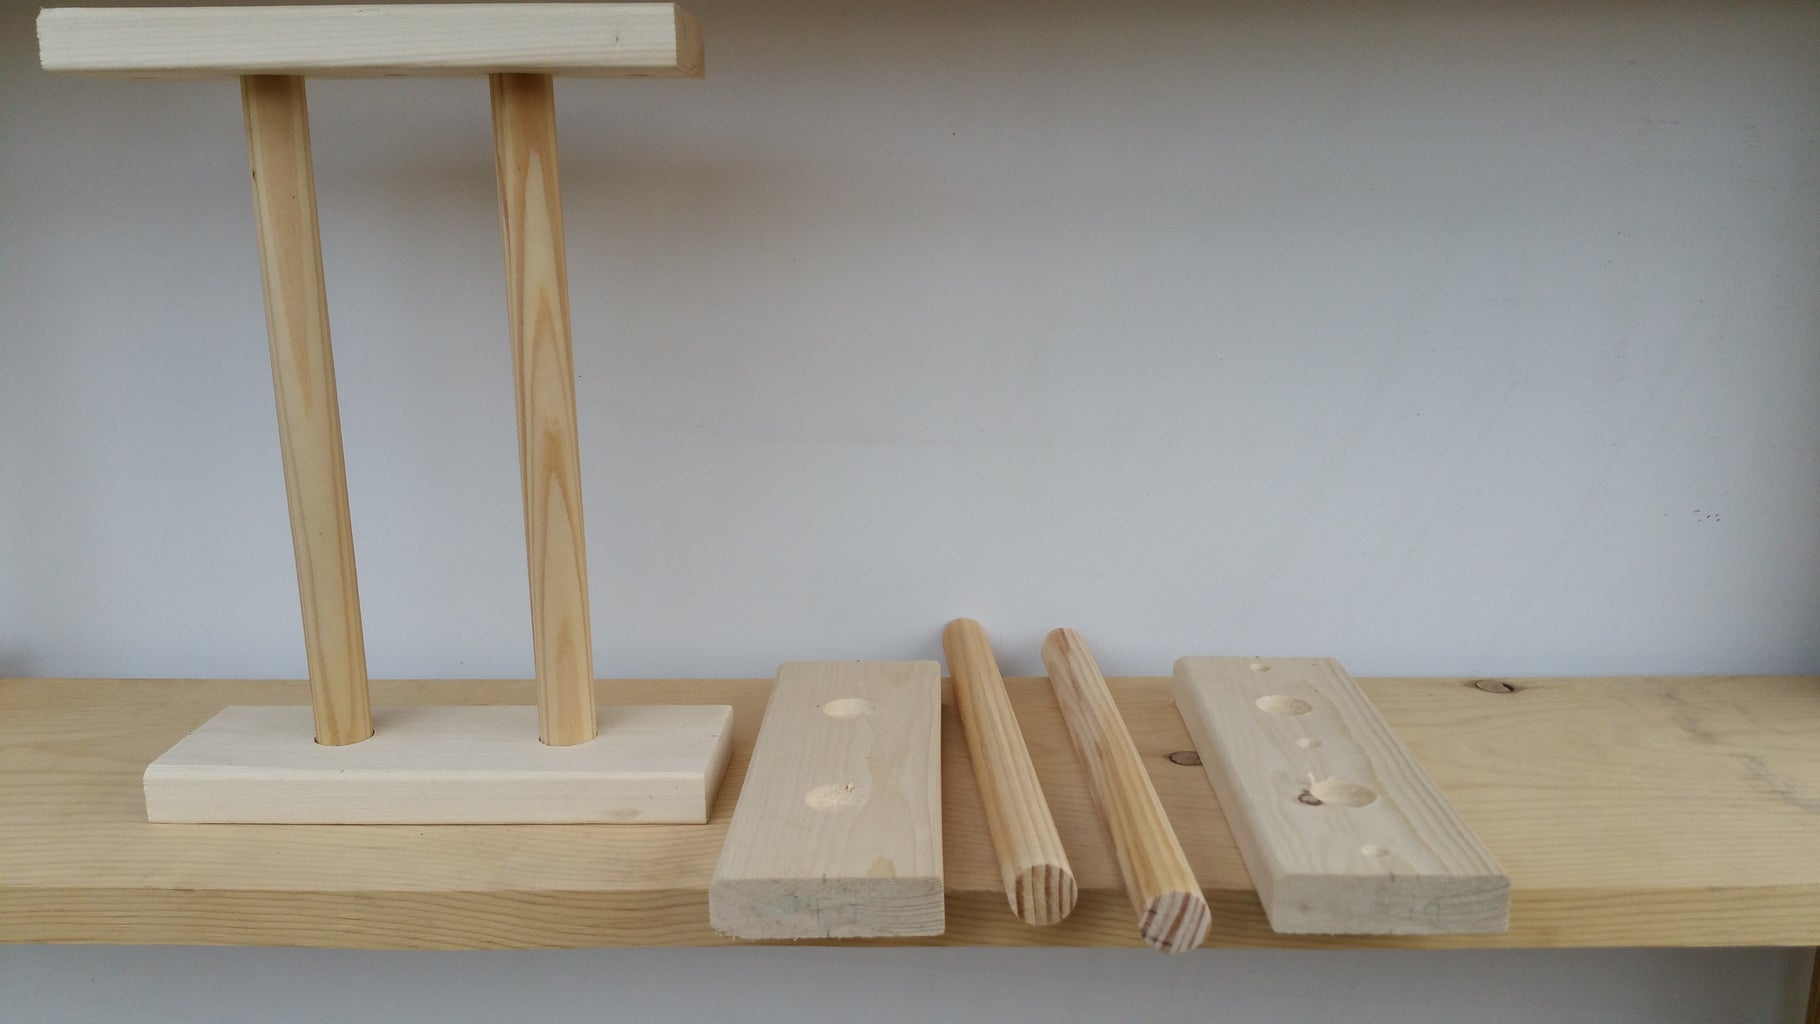 Cutting Out the Wooden Shelf Supports Pieces